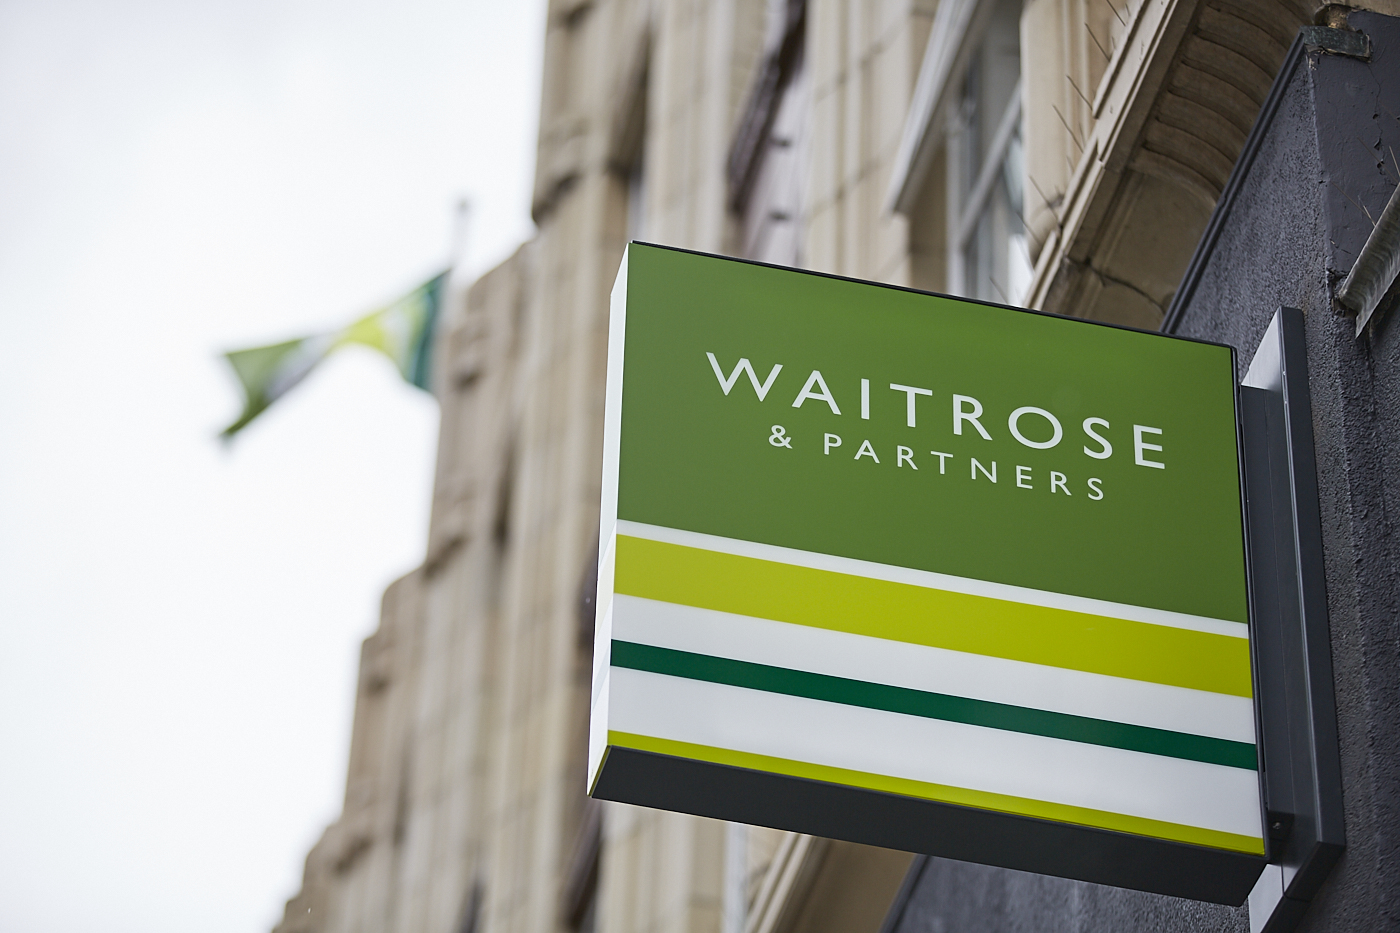 Happy Anniversary, Waitrose!